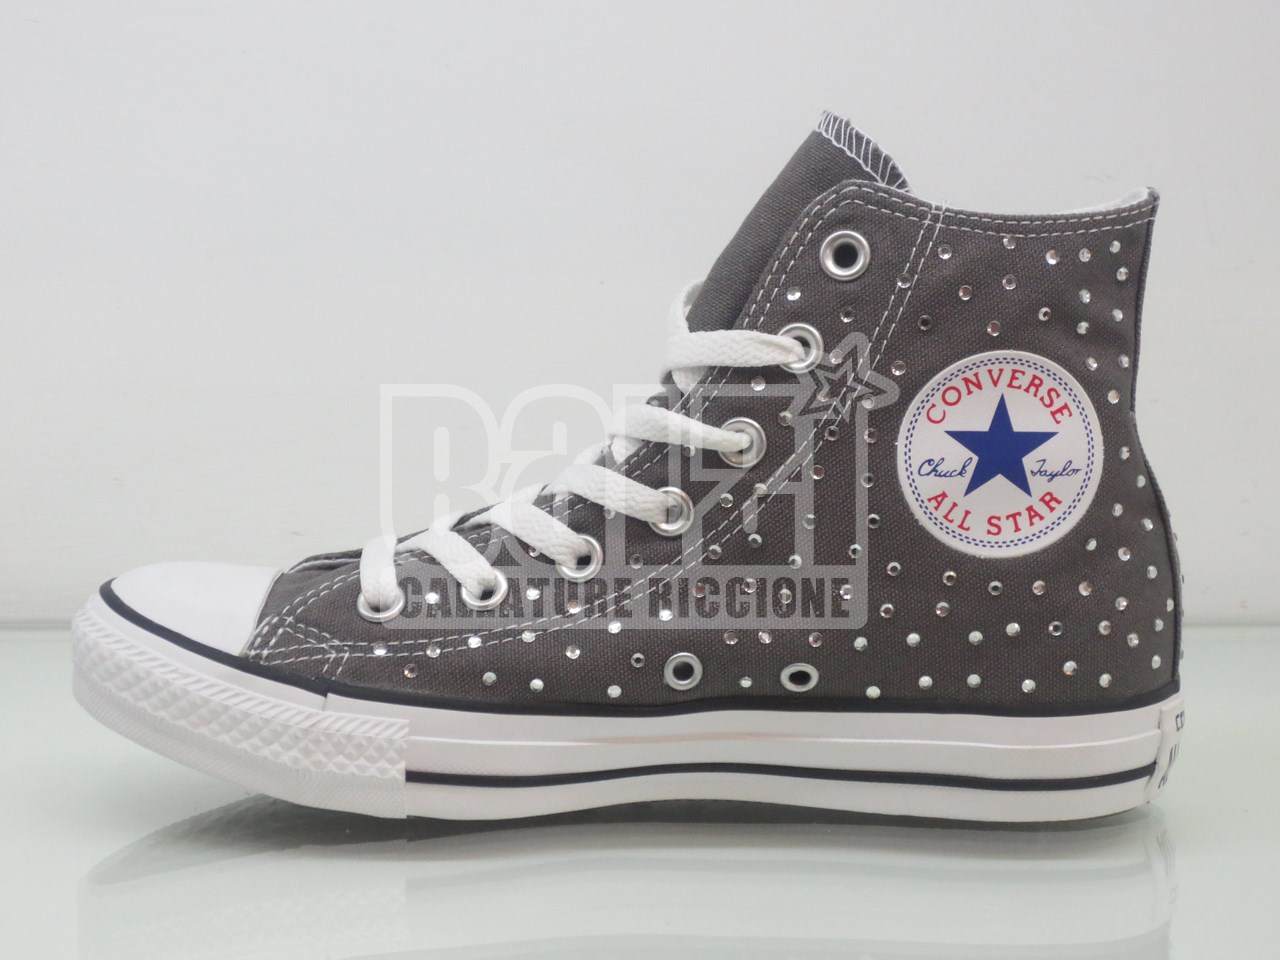 converse all star grigie nere